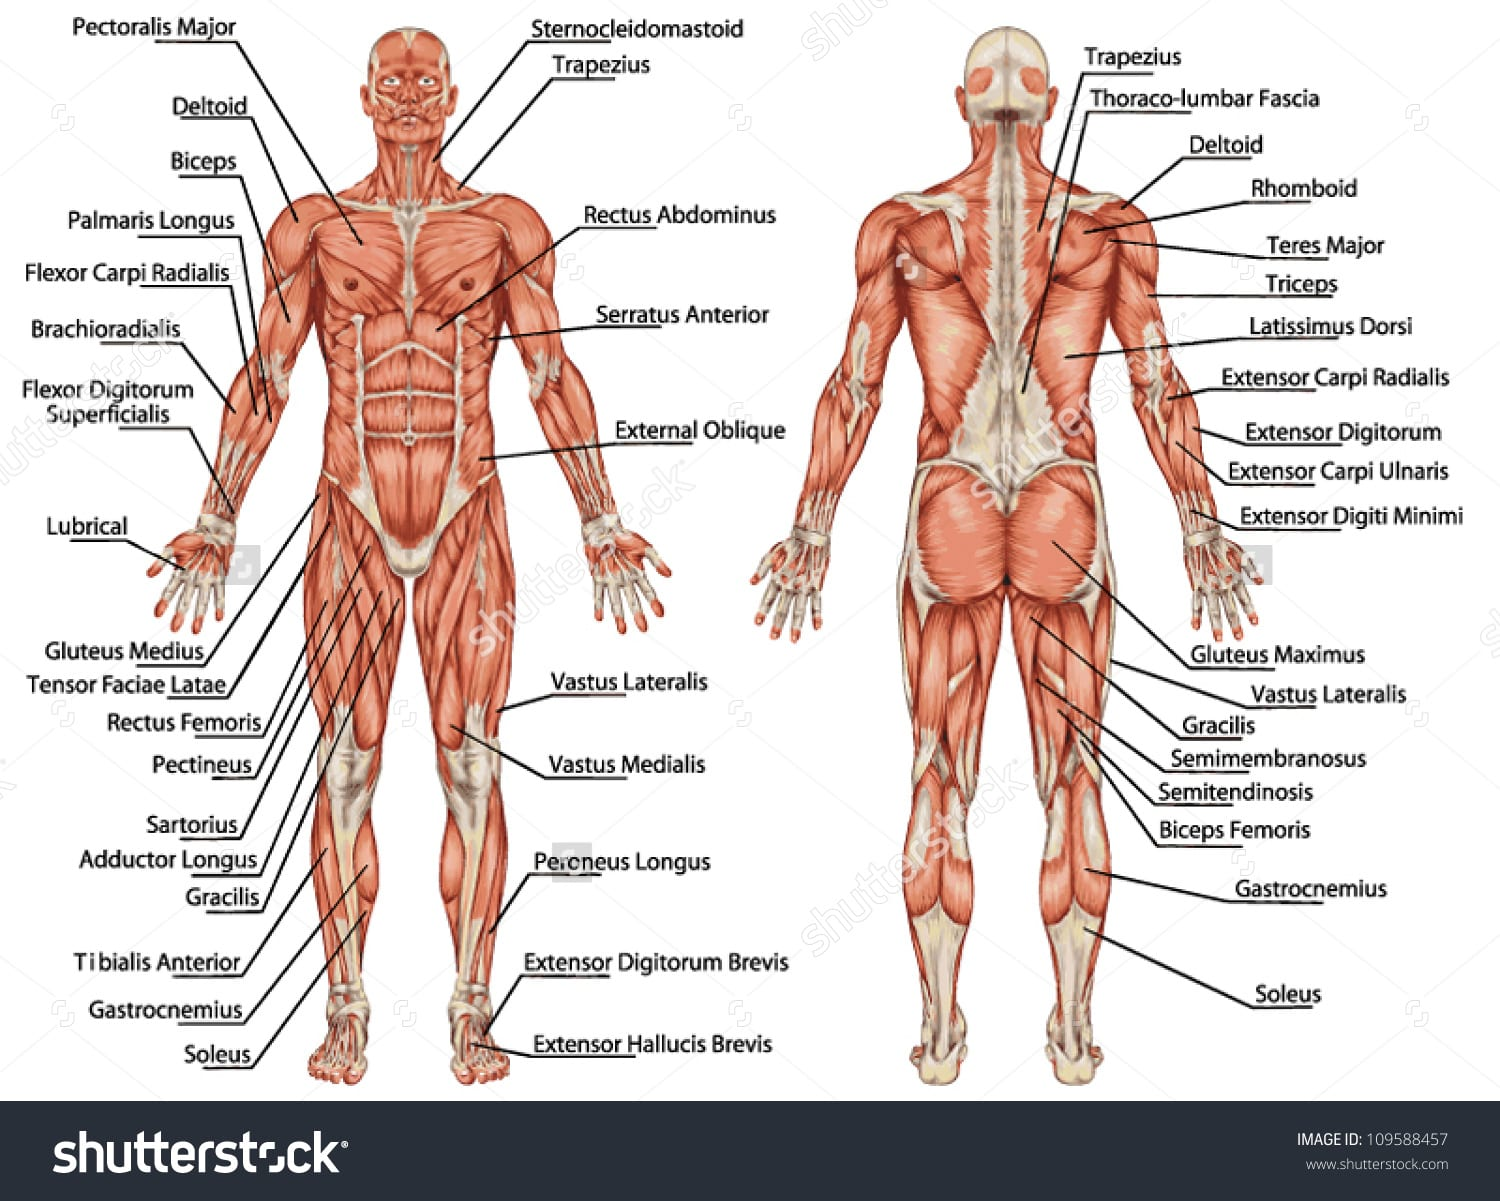 anatomy-of-muscles-in-body-labeled-anterior-upper-muscle-mell-tk-on